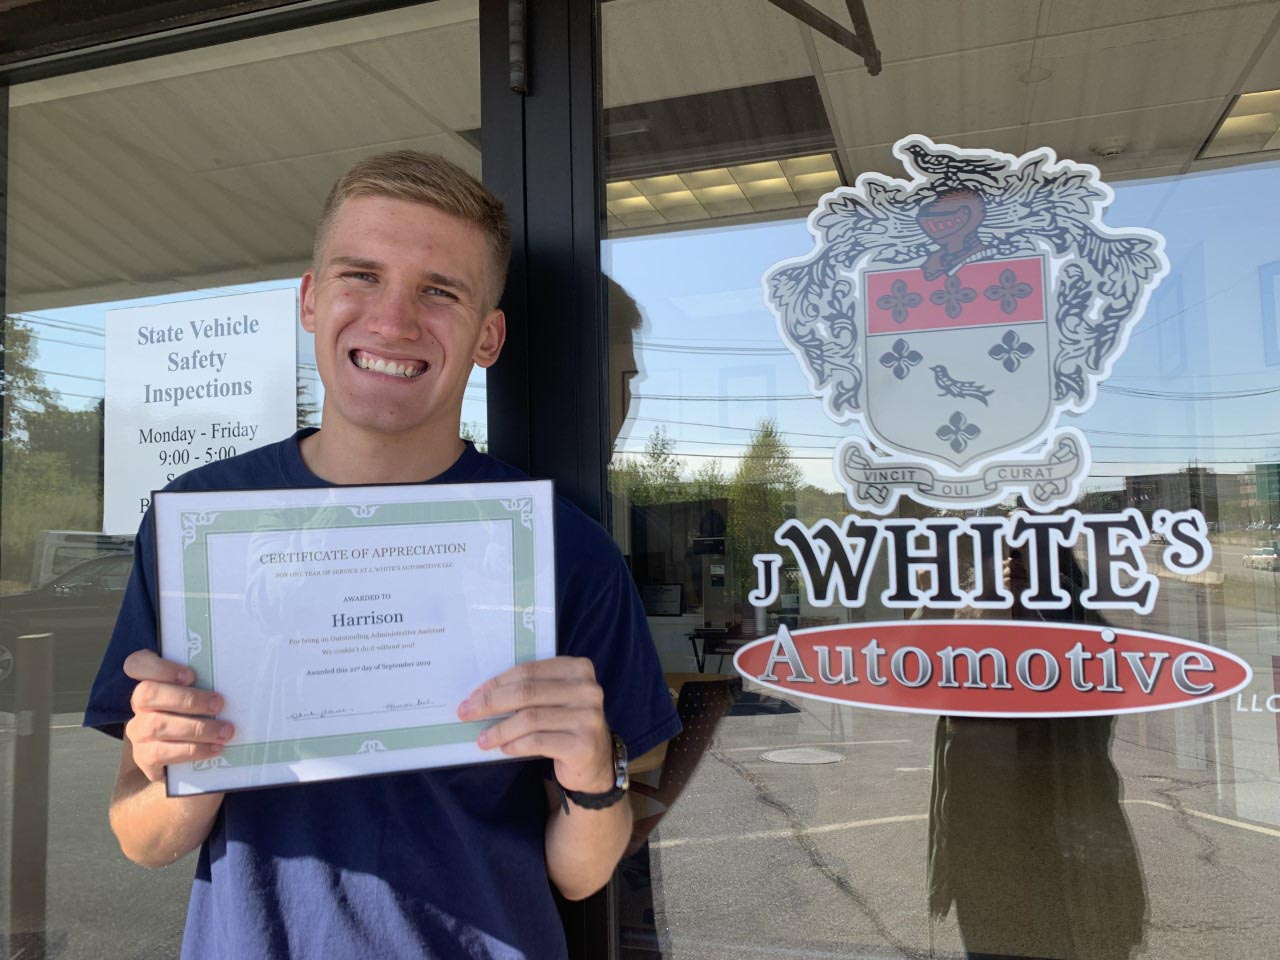 Harrison Shaffer proudly showing off his 1 year of employment certificate from J. White's Automotive.